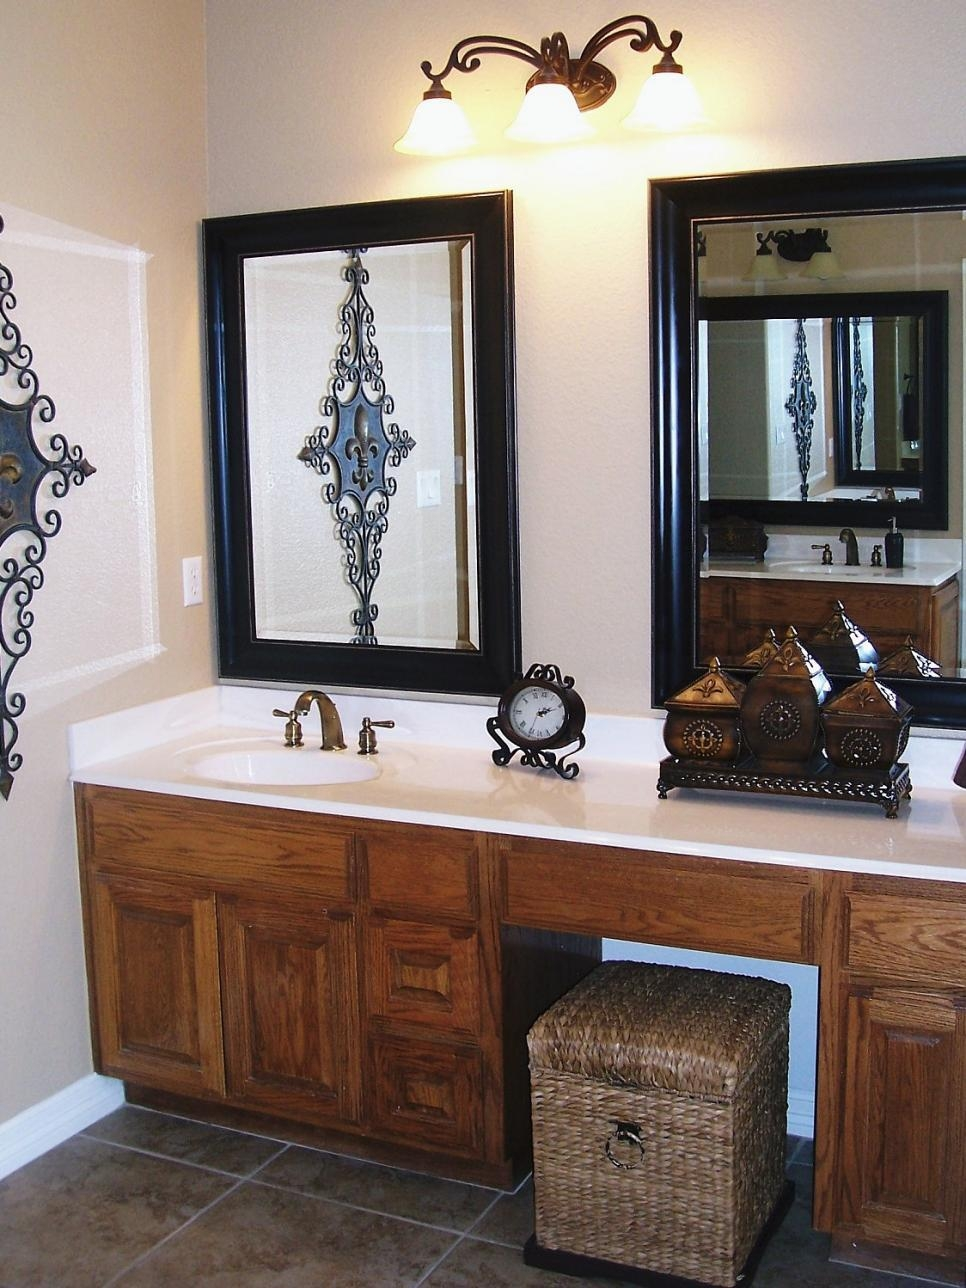 10 Beautiful Bathroom Mirrors | Hgtv Inside Decorative Mirrors For Bathroom Vanity (View 3 of 20)